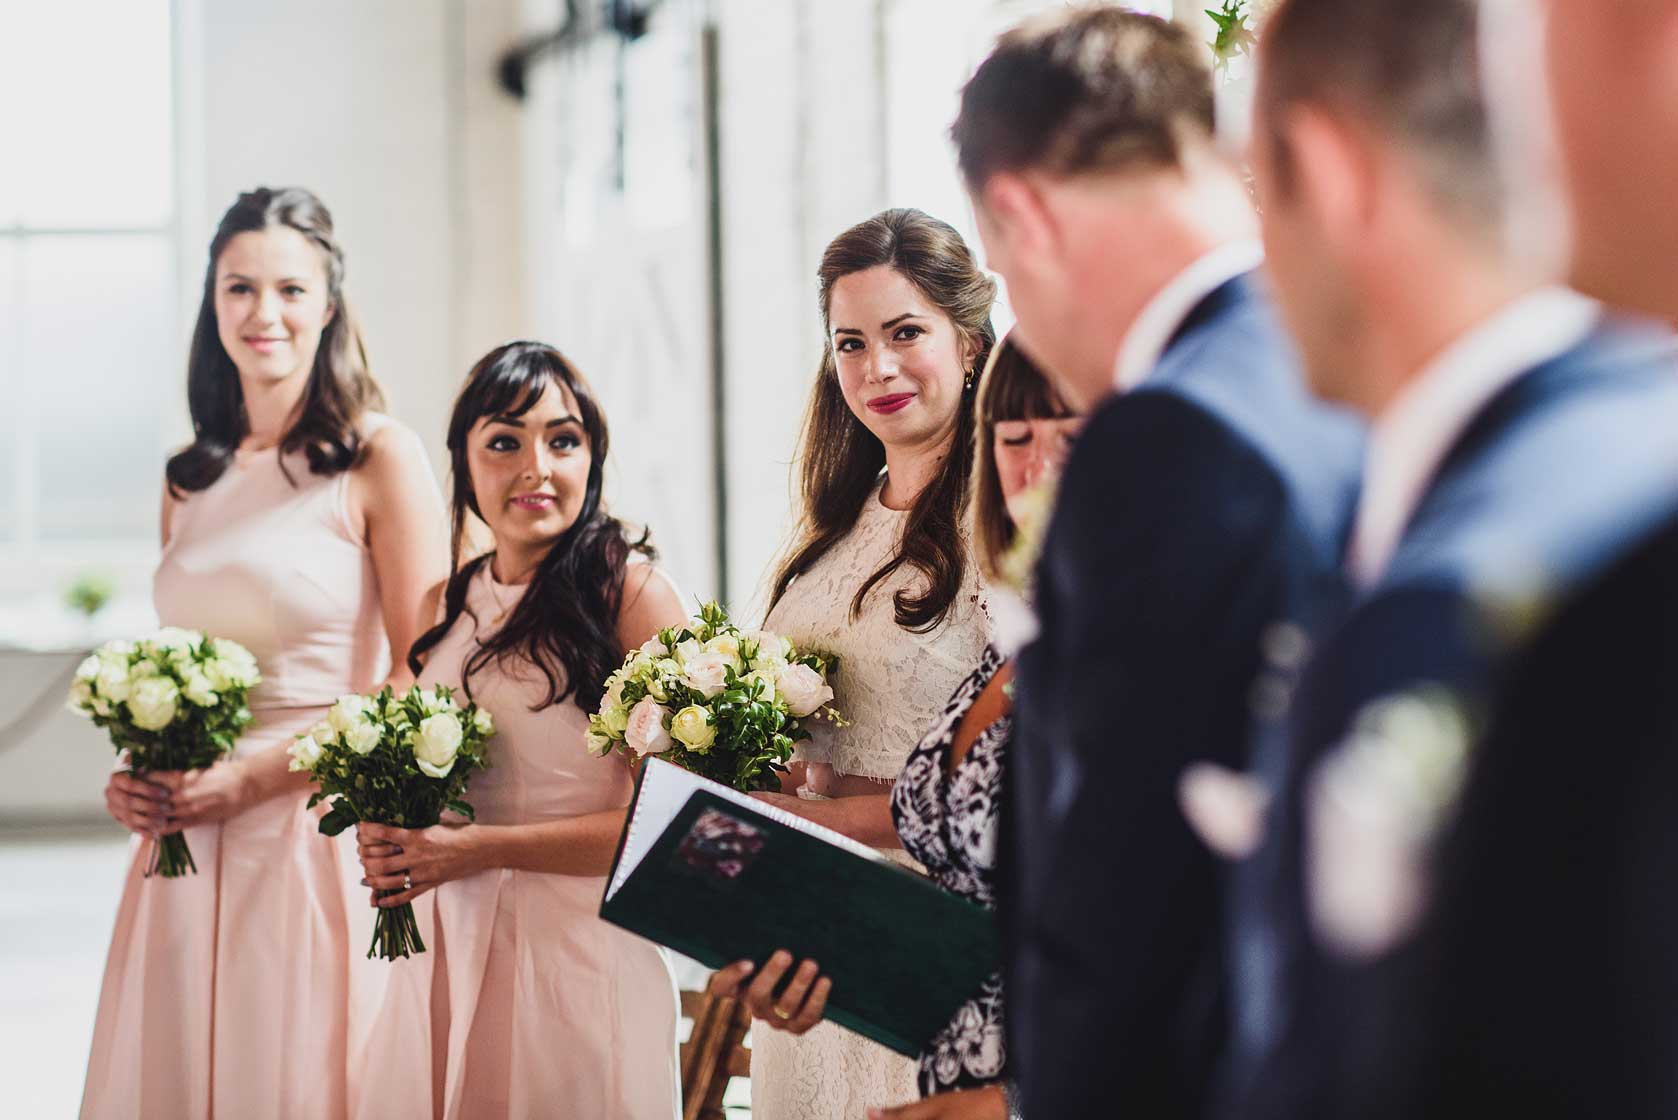 Reportage Wedding Photography at Trinity Buoy Wharf